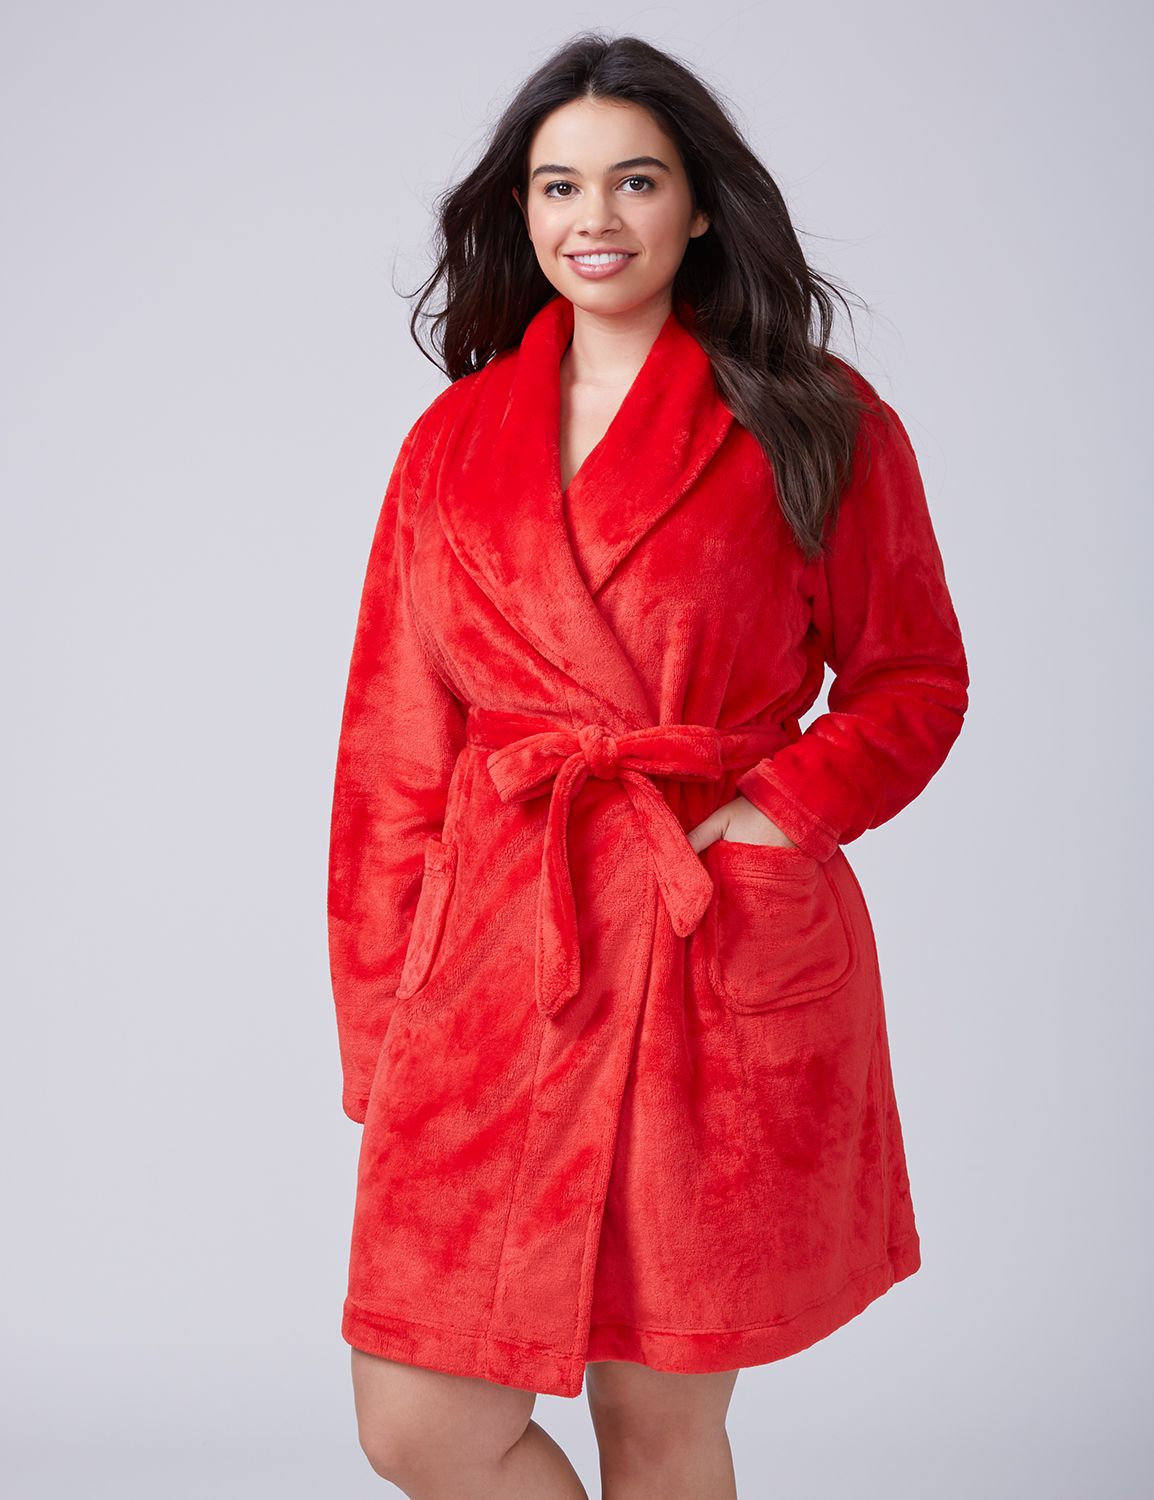 Lane Bryant Womens Plush Robe 18/20 Chinese Red